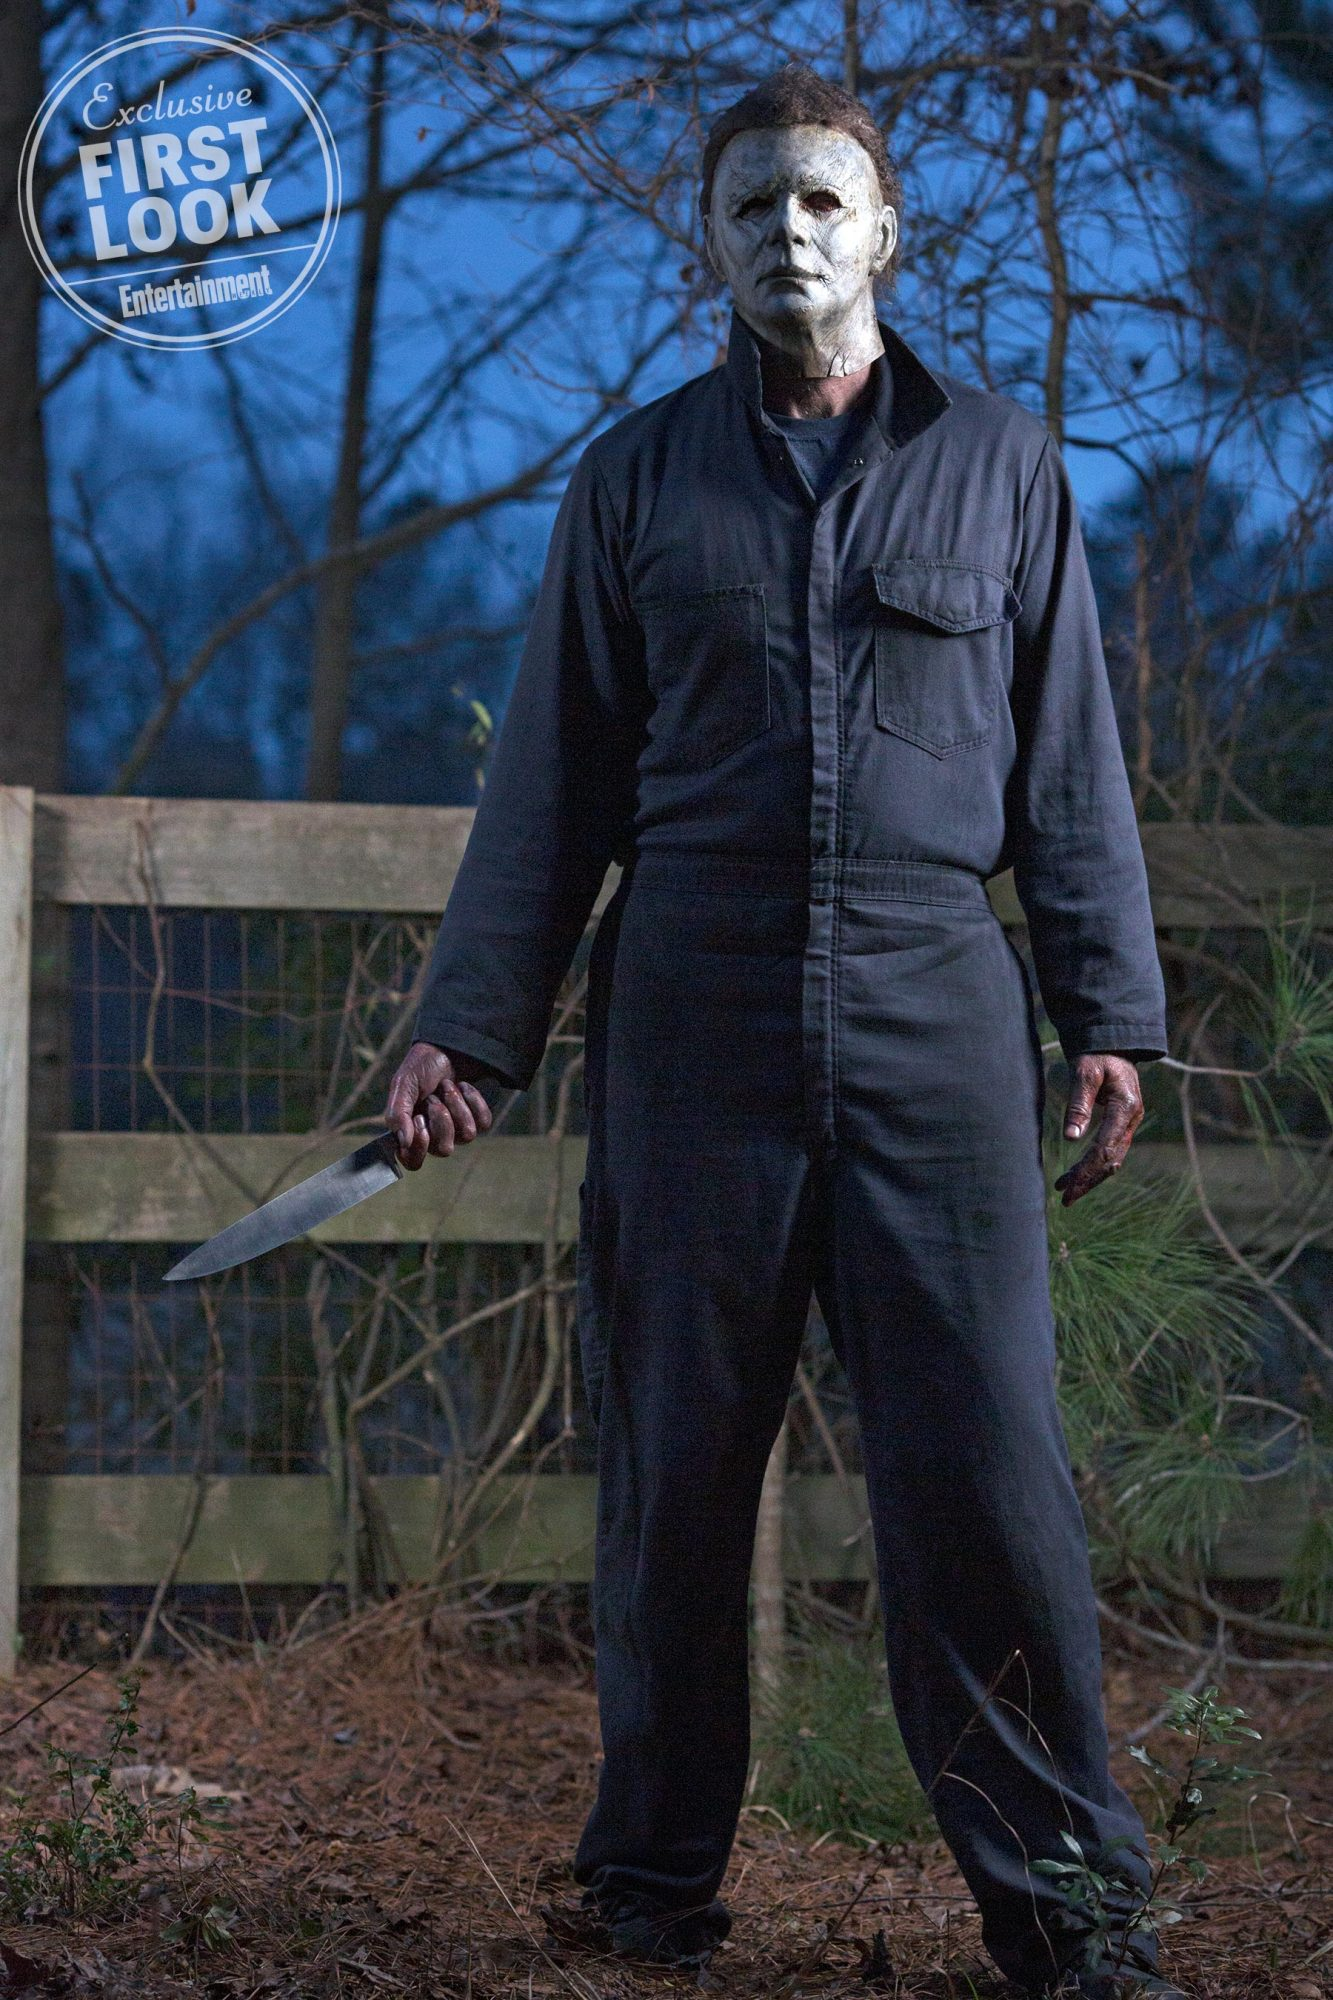 Michael Myers Halloween 2020 Entertainment Weekly See an exclusive image of Michael Myers in the new 'Halloween